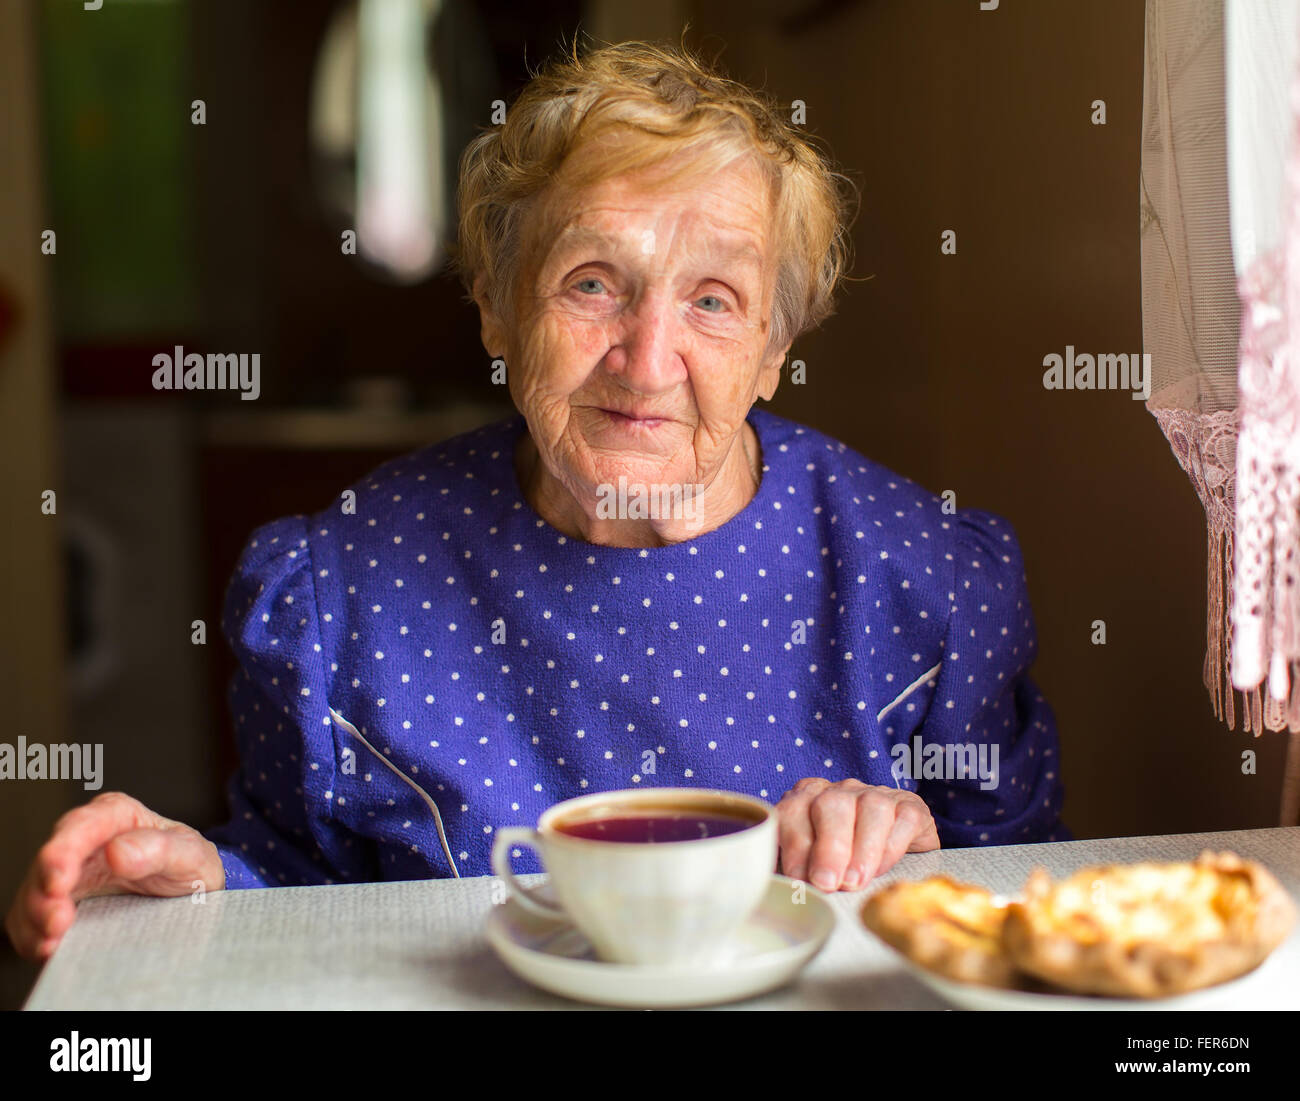 An elderly woman sitting at the table and drinking tea. - Stock Image